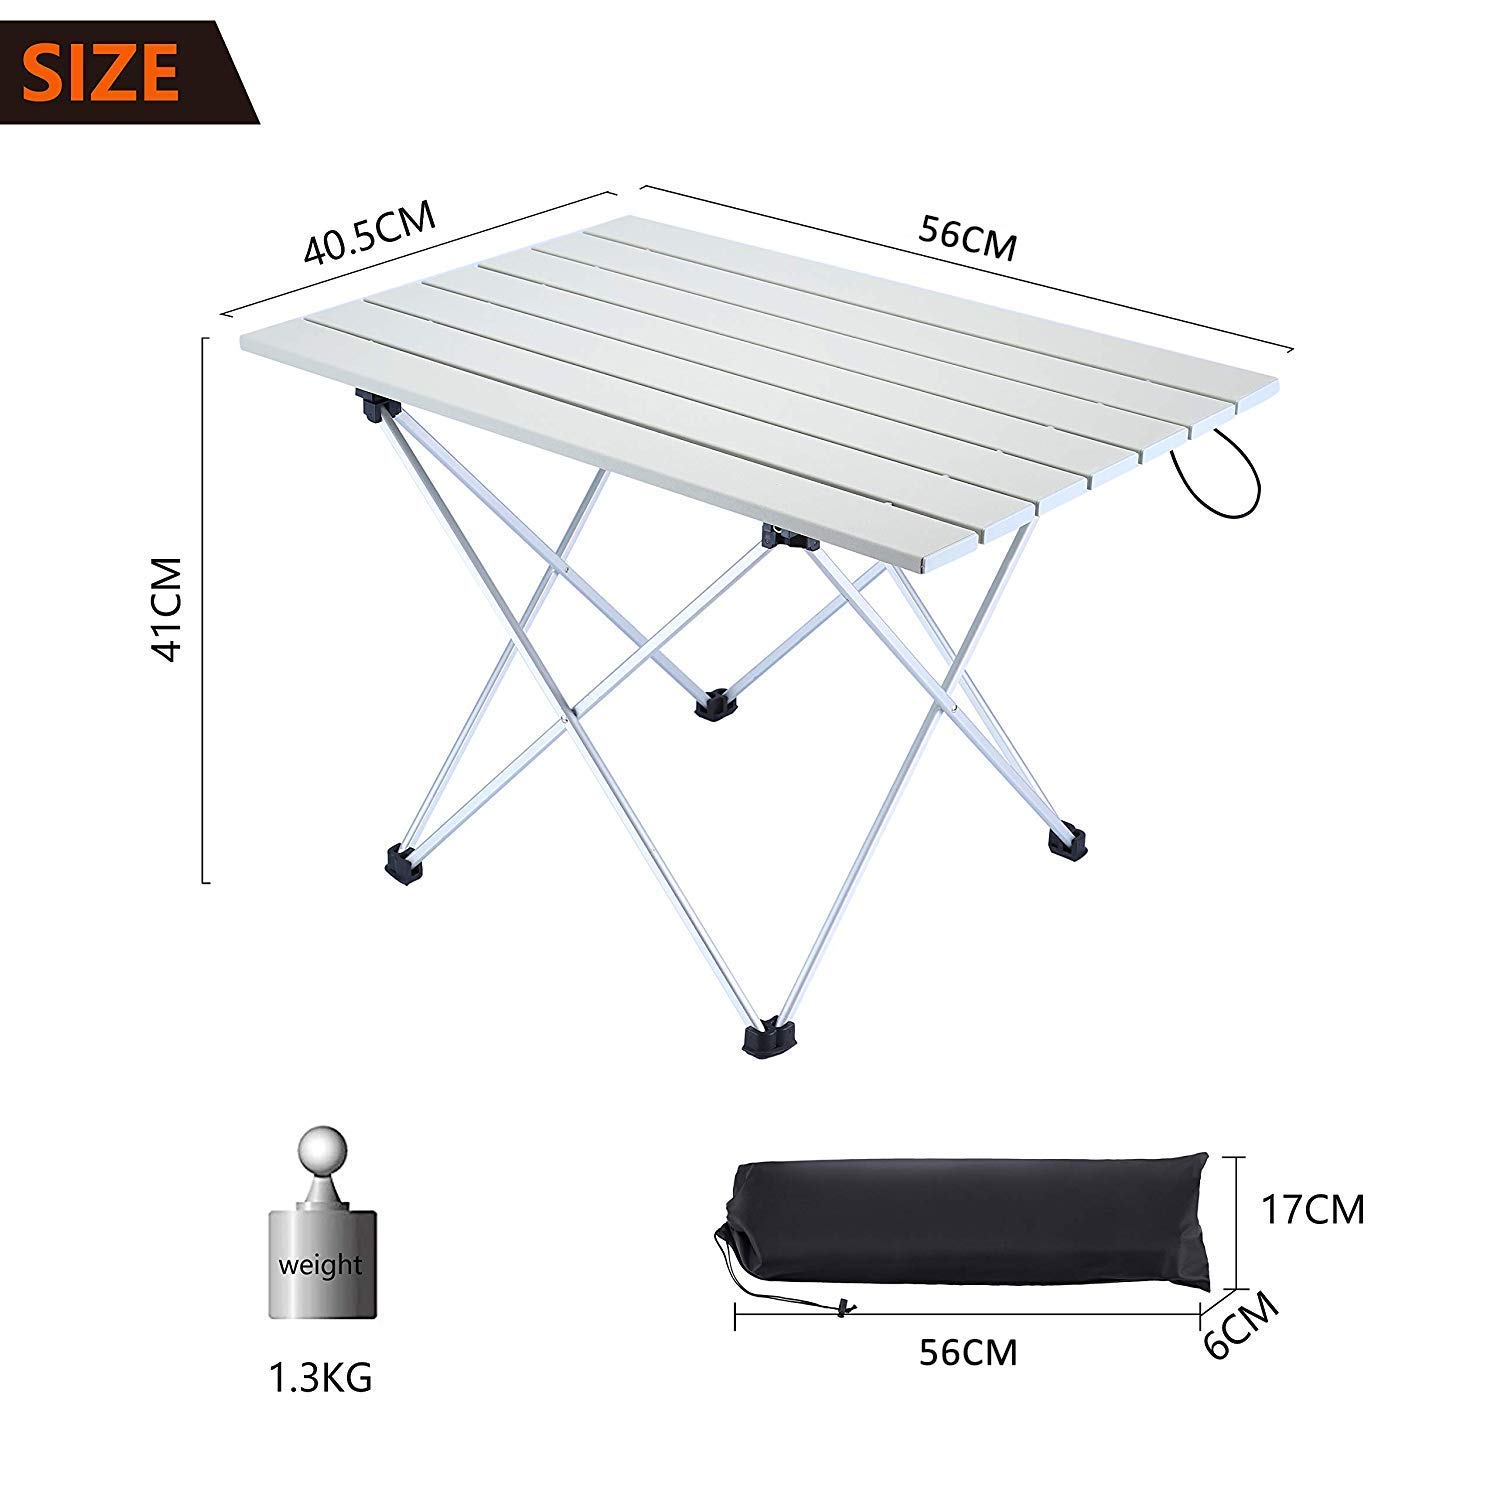 A plus life Camping Table Lightweight Aluminum Table with Carrying Bag for Outdoor and Home Easy to Clean. 56/×41/×40 cm Portable Outdoor Folding Table